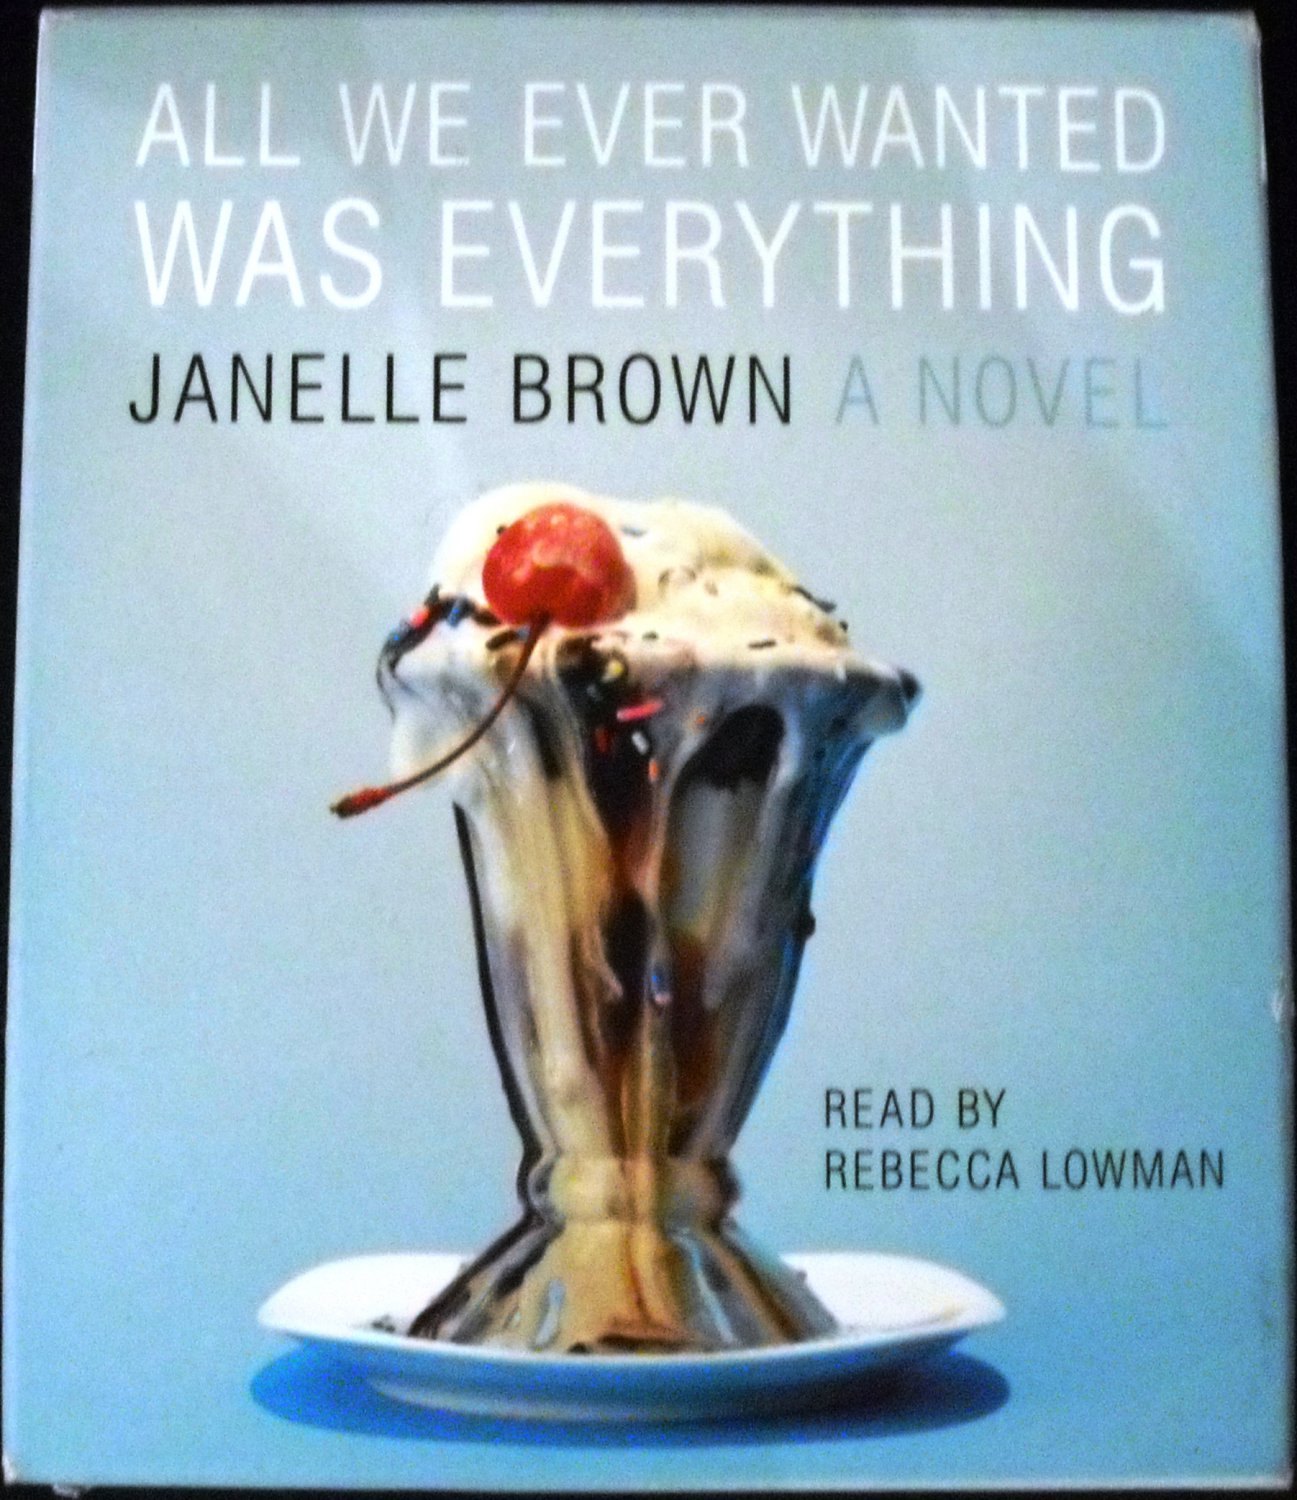 All We Ever Wanted Was Everything by Janelle Brown Audiobook (CD) (2008)